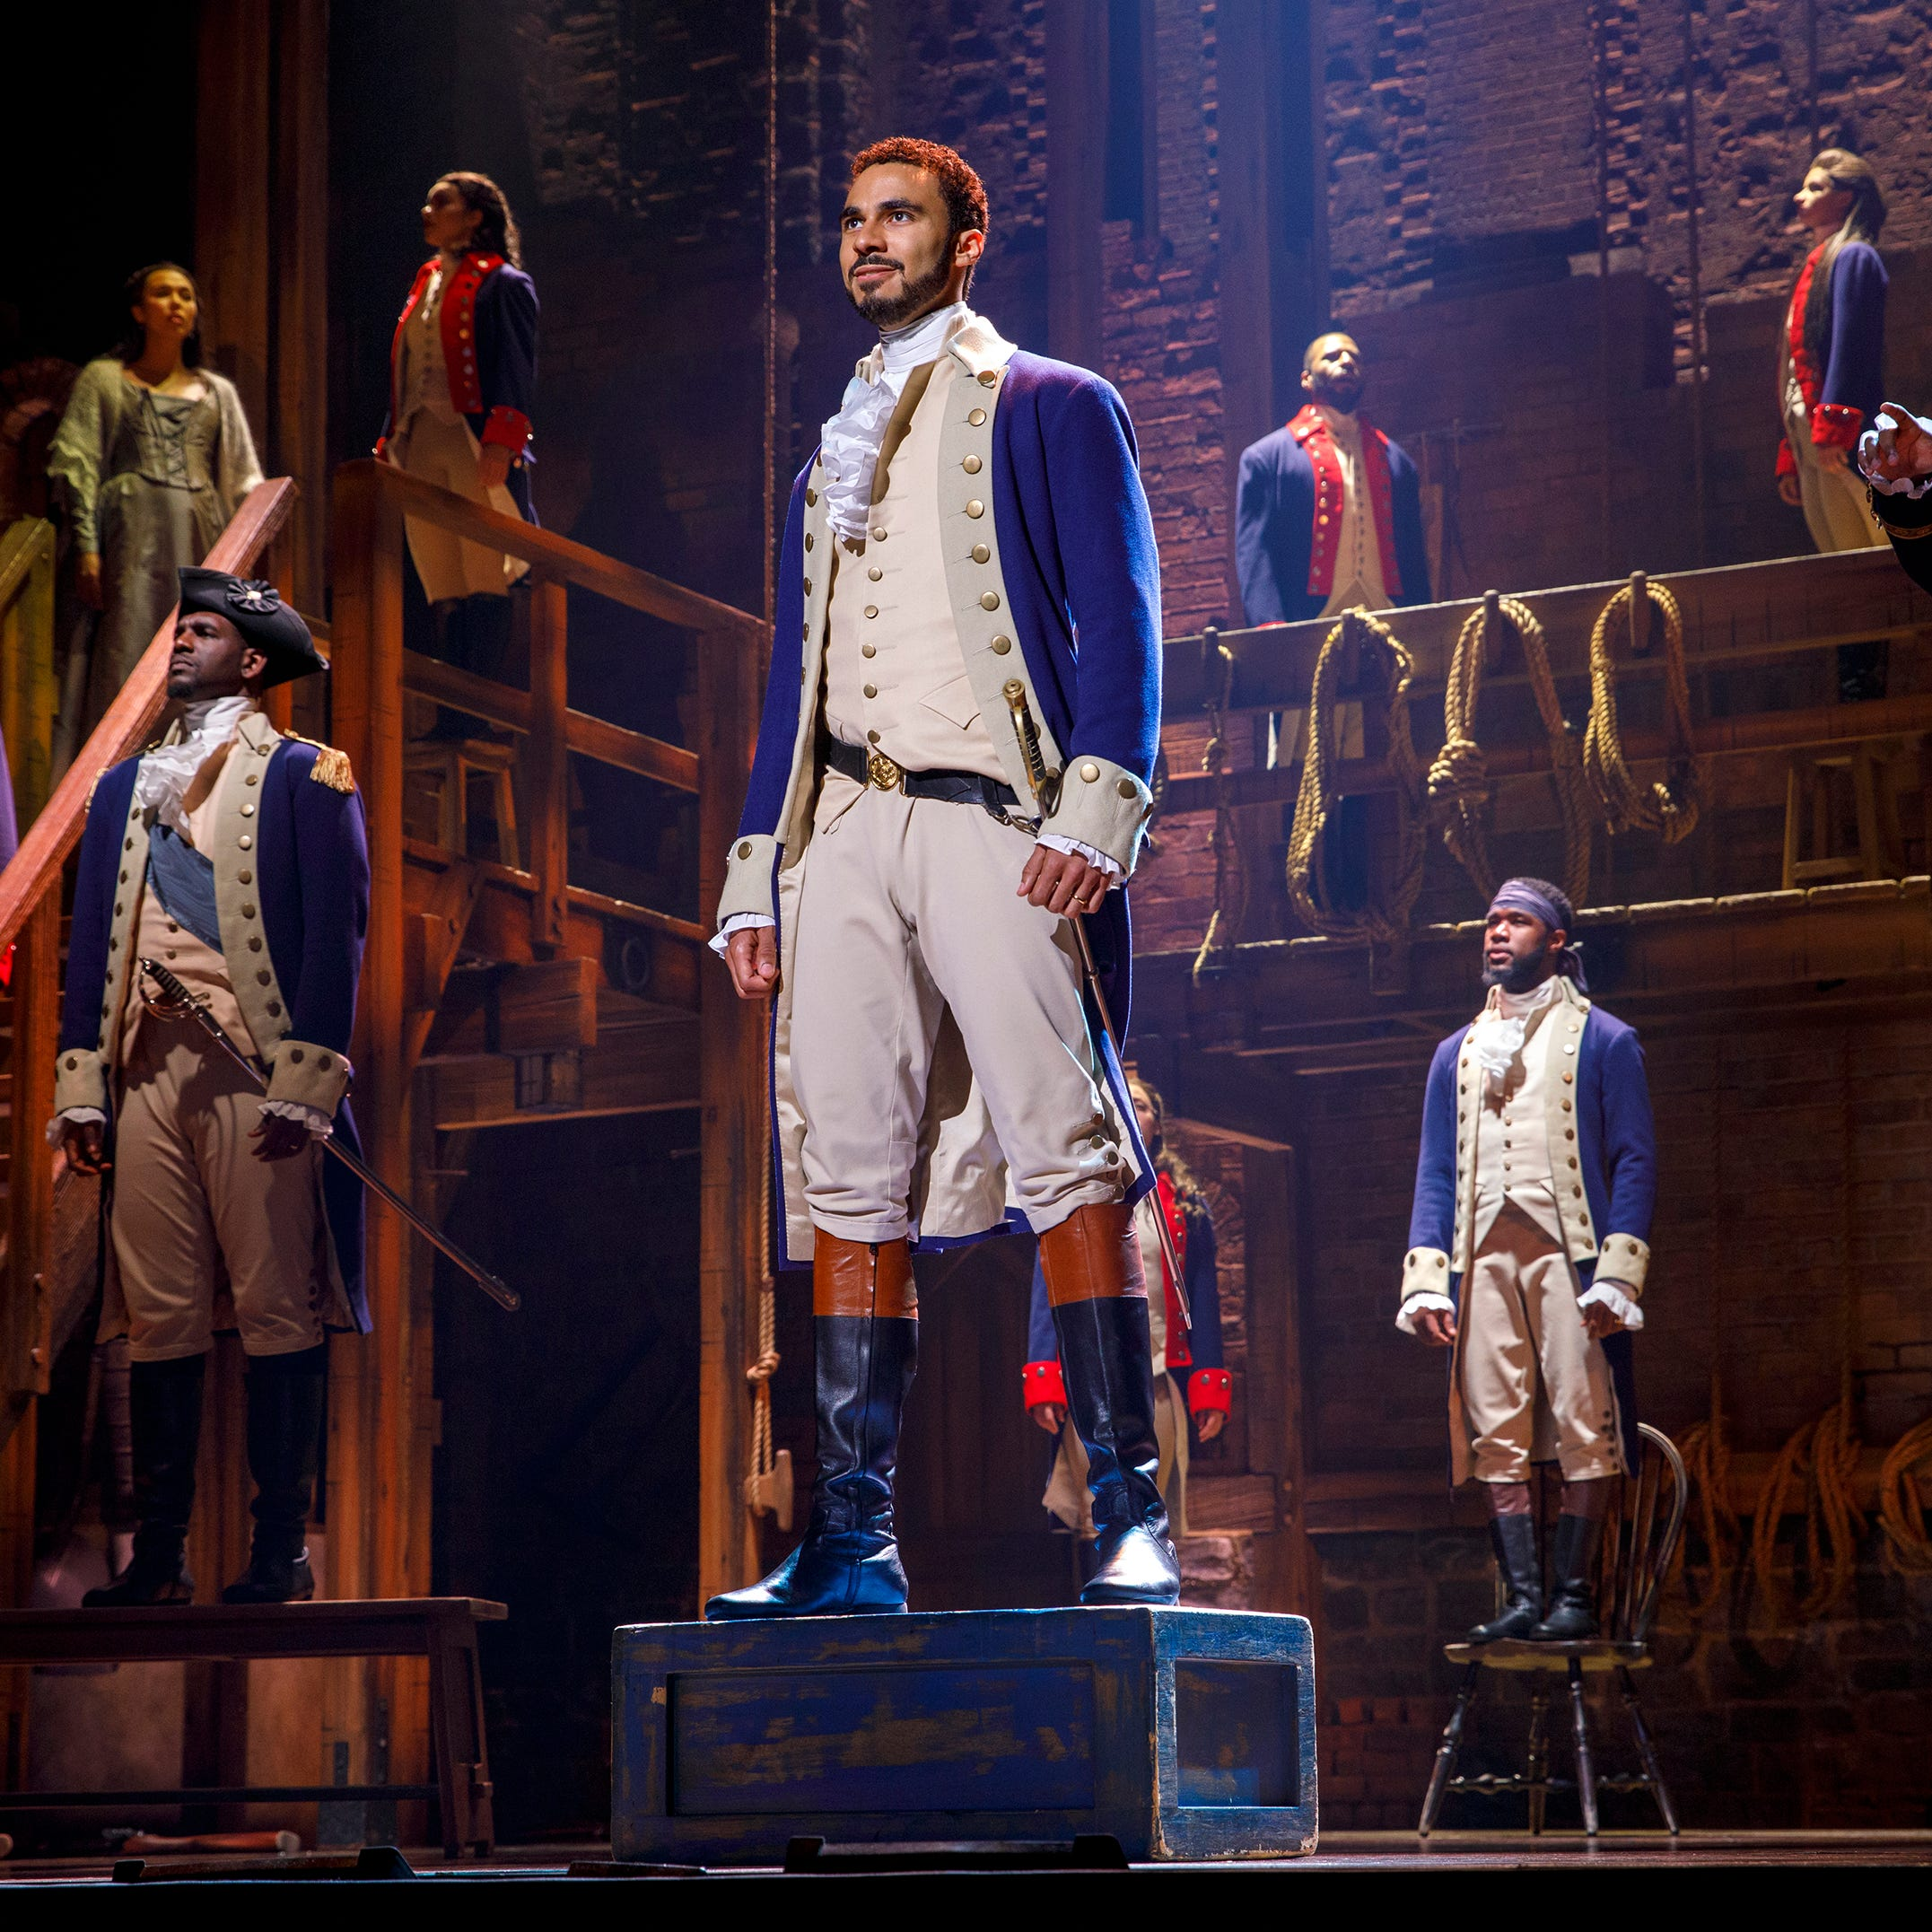 Fortunate charities still have 'Hamilton' tickets to sell